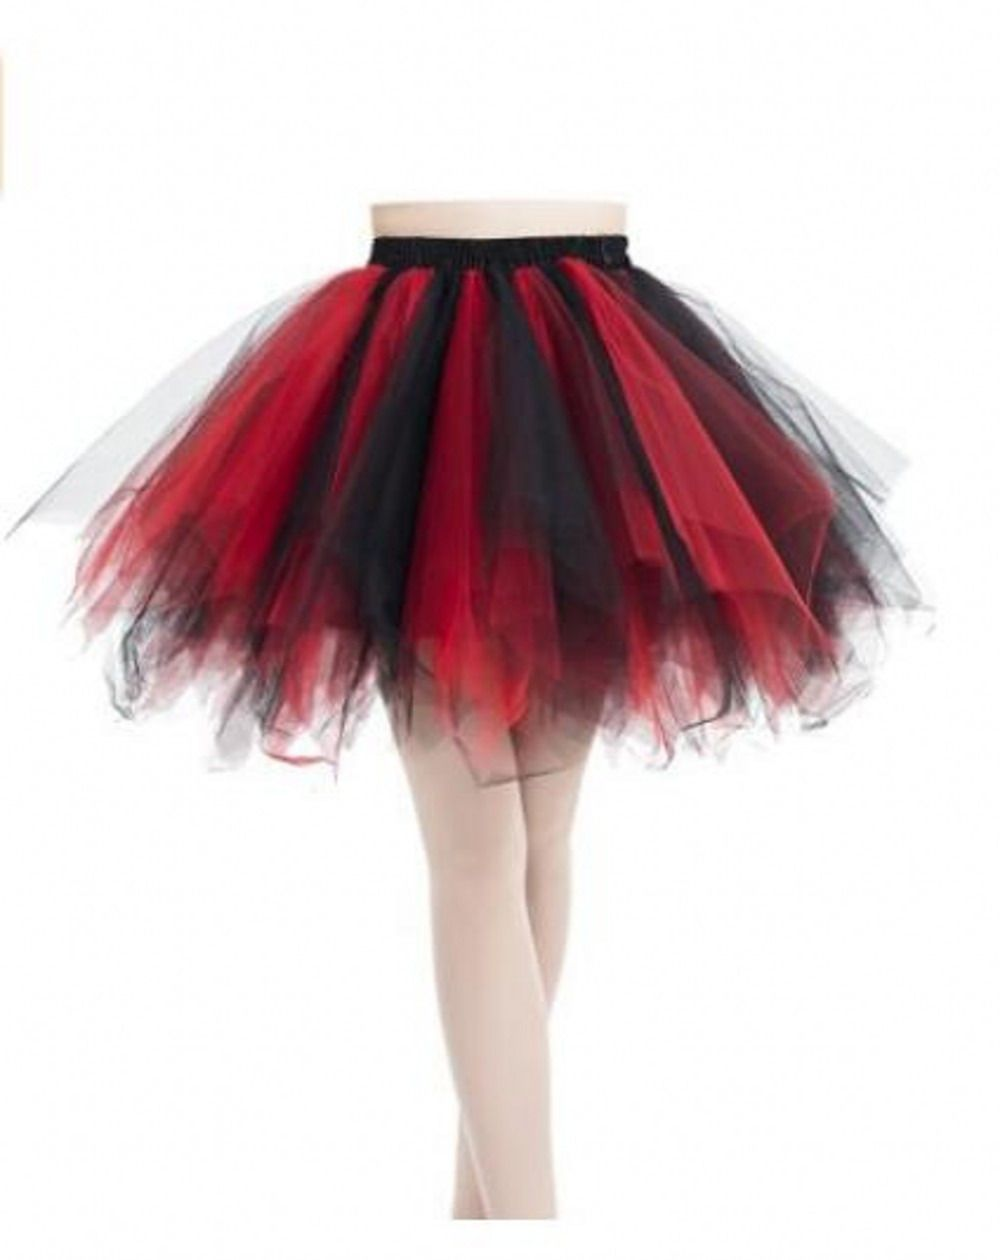 f4979bd40079 Click to Buy << 2016 New Arrival Cheap Short Skirt Colorful Tutu Petticoat  Prom Evening Party Occasion Accessory Christmas Length 17.5 inches  #Affiliate